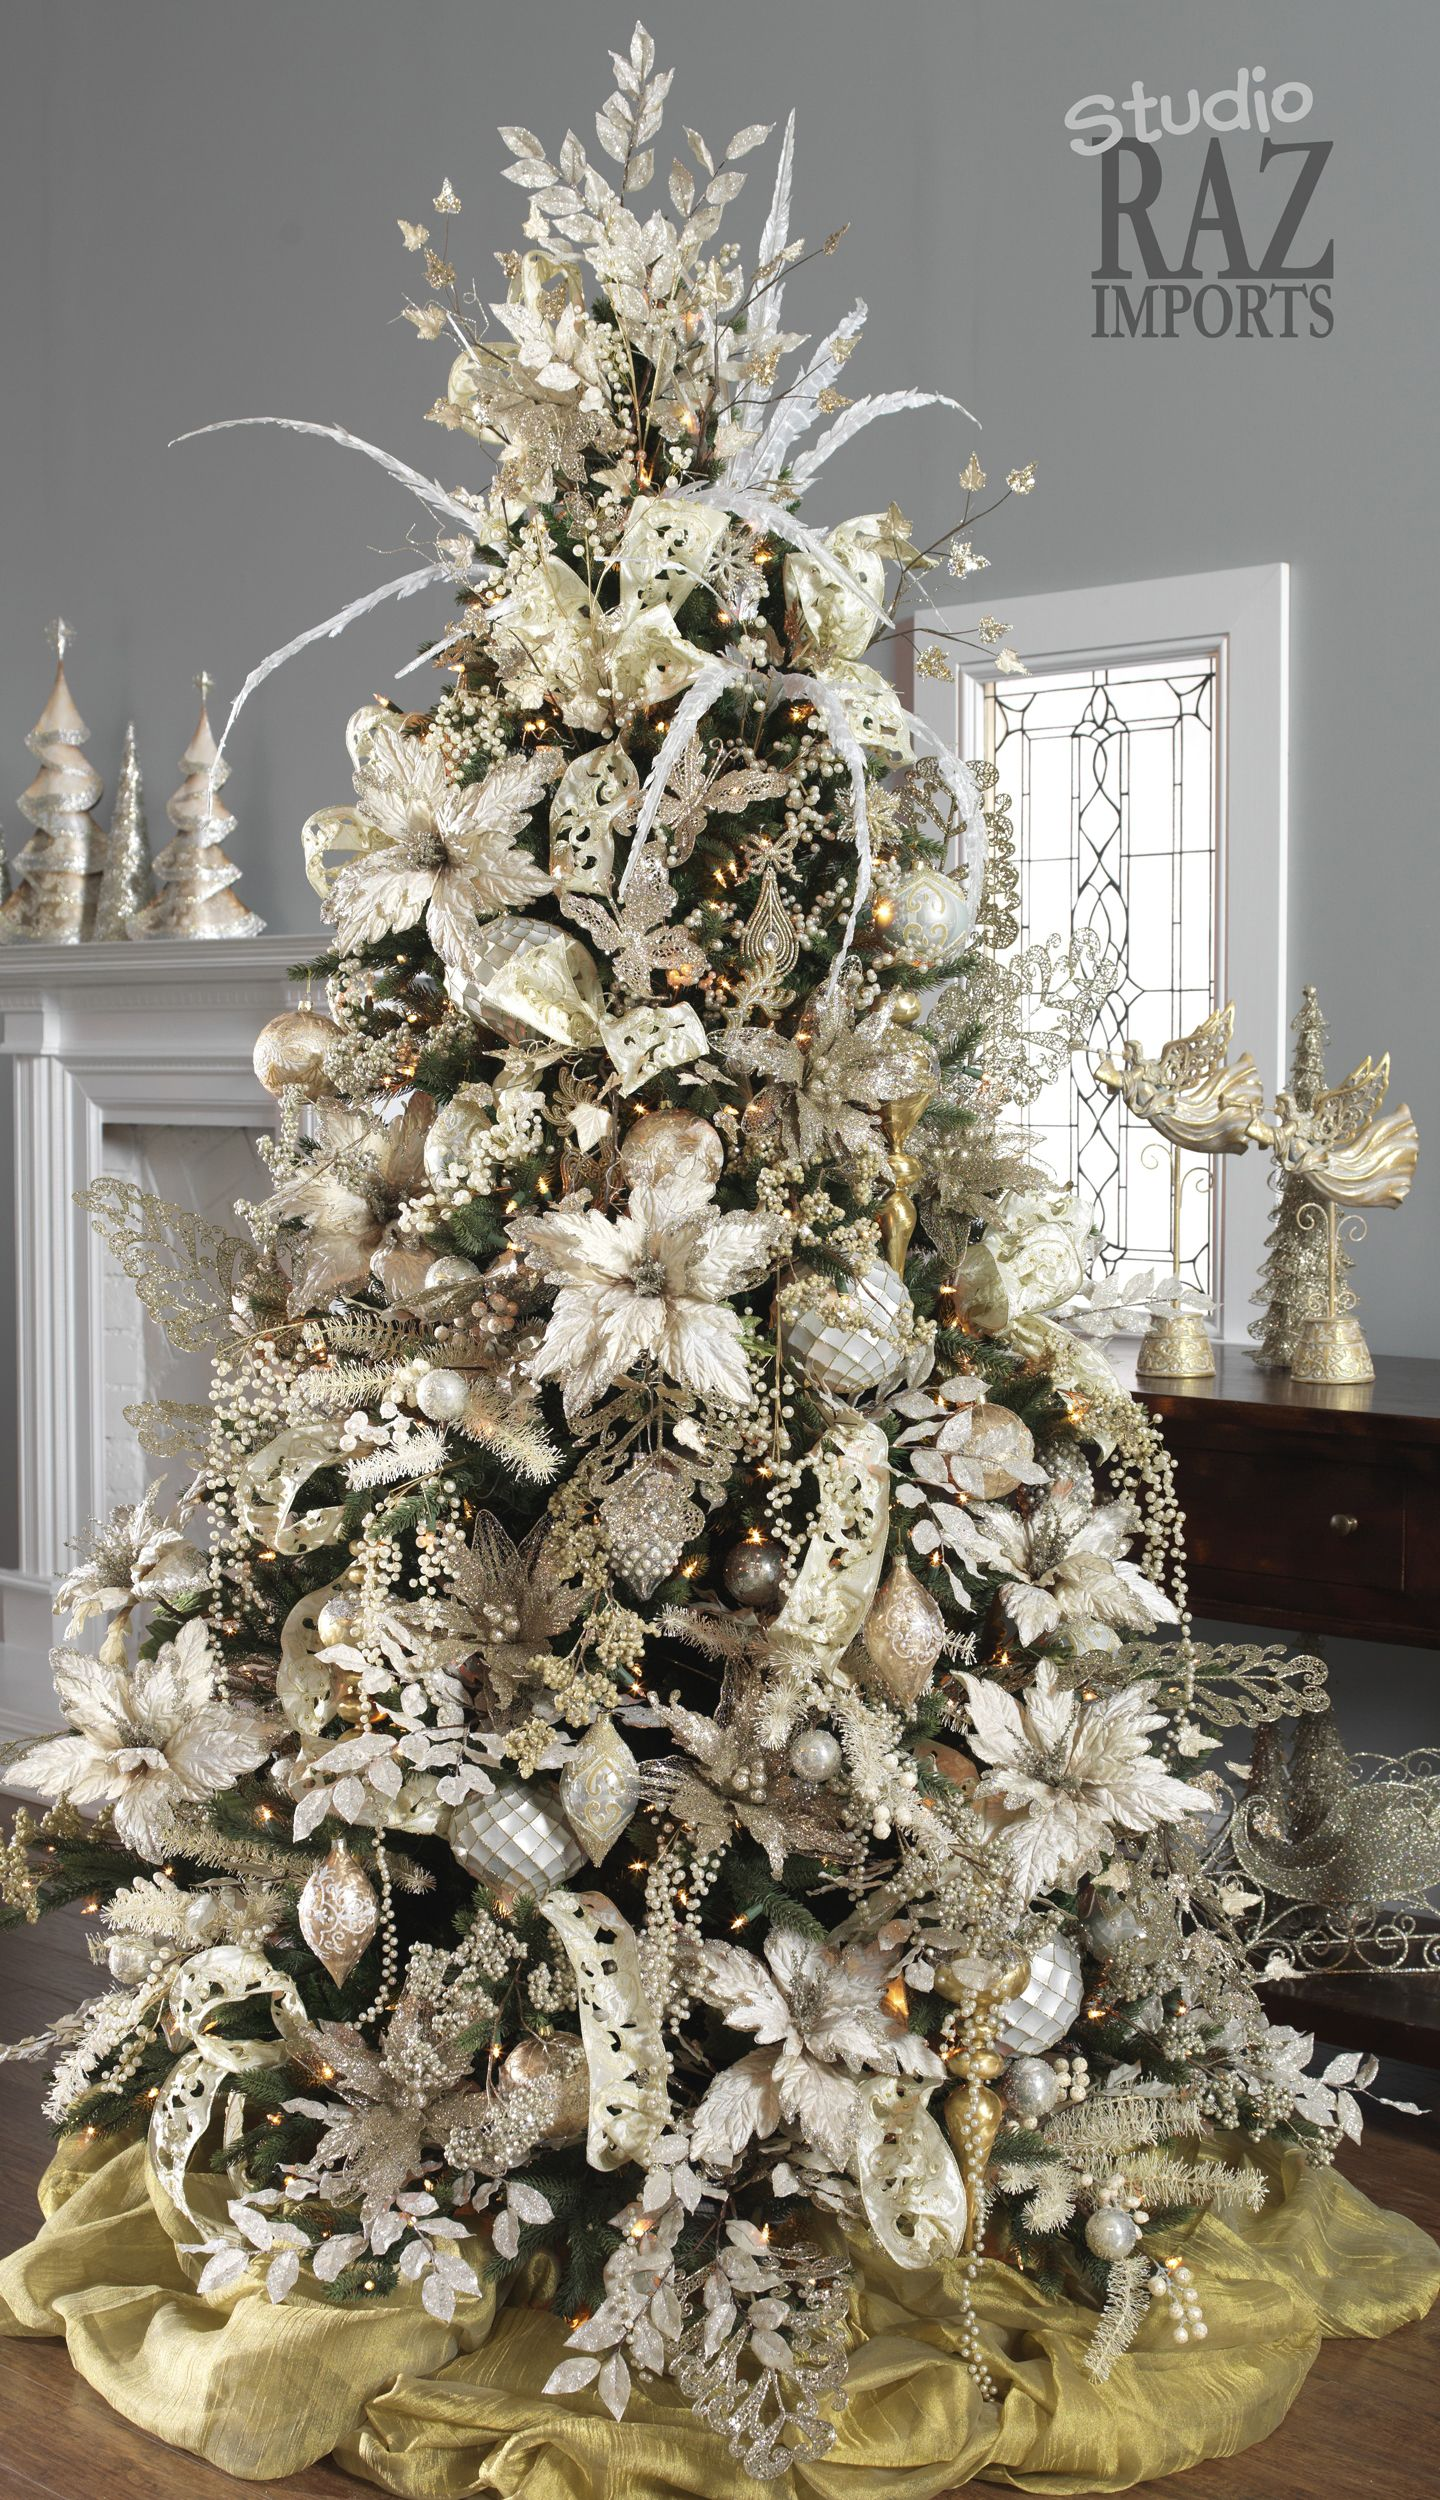 37 inspiring christmas decorating ideas shown white christmas tree ala winter wonderland decoholic - Winter Wonderland Christmas Decorations